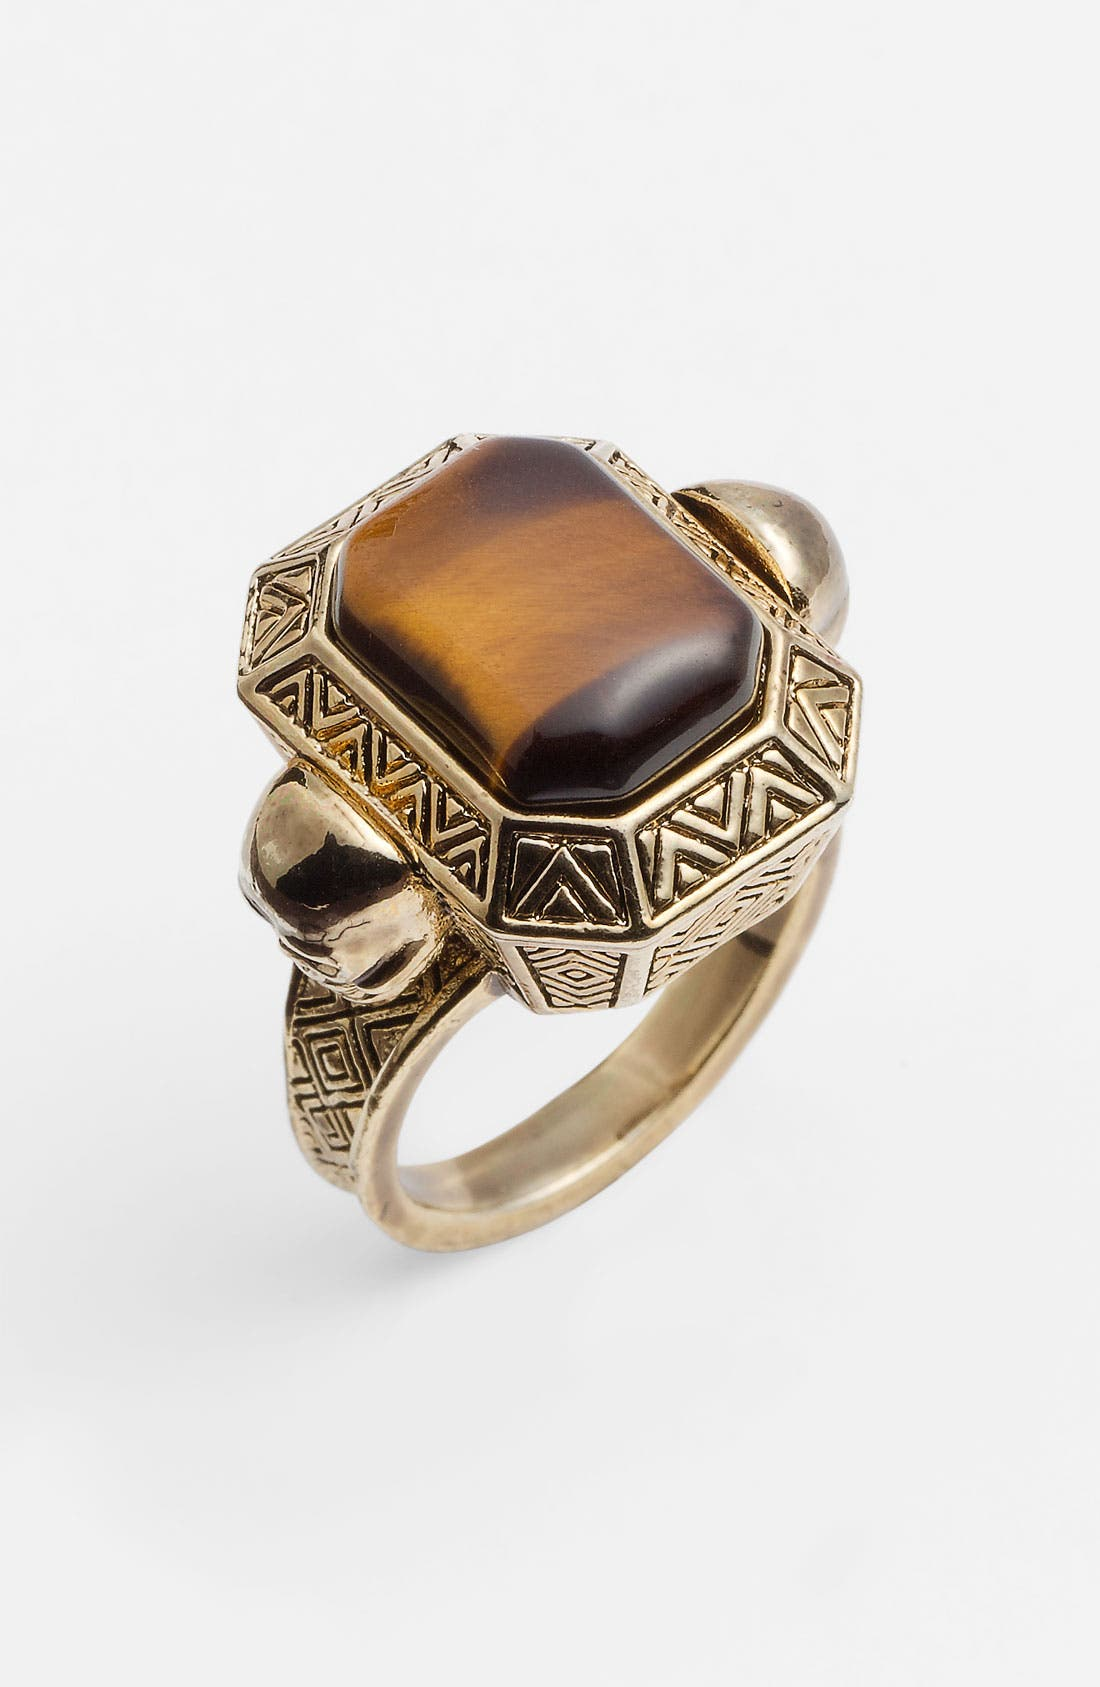 Alternate Image 1 Selected - House of Harlow 1960 Engraved Skull Tiger's Eye Cocktail Ring